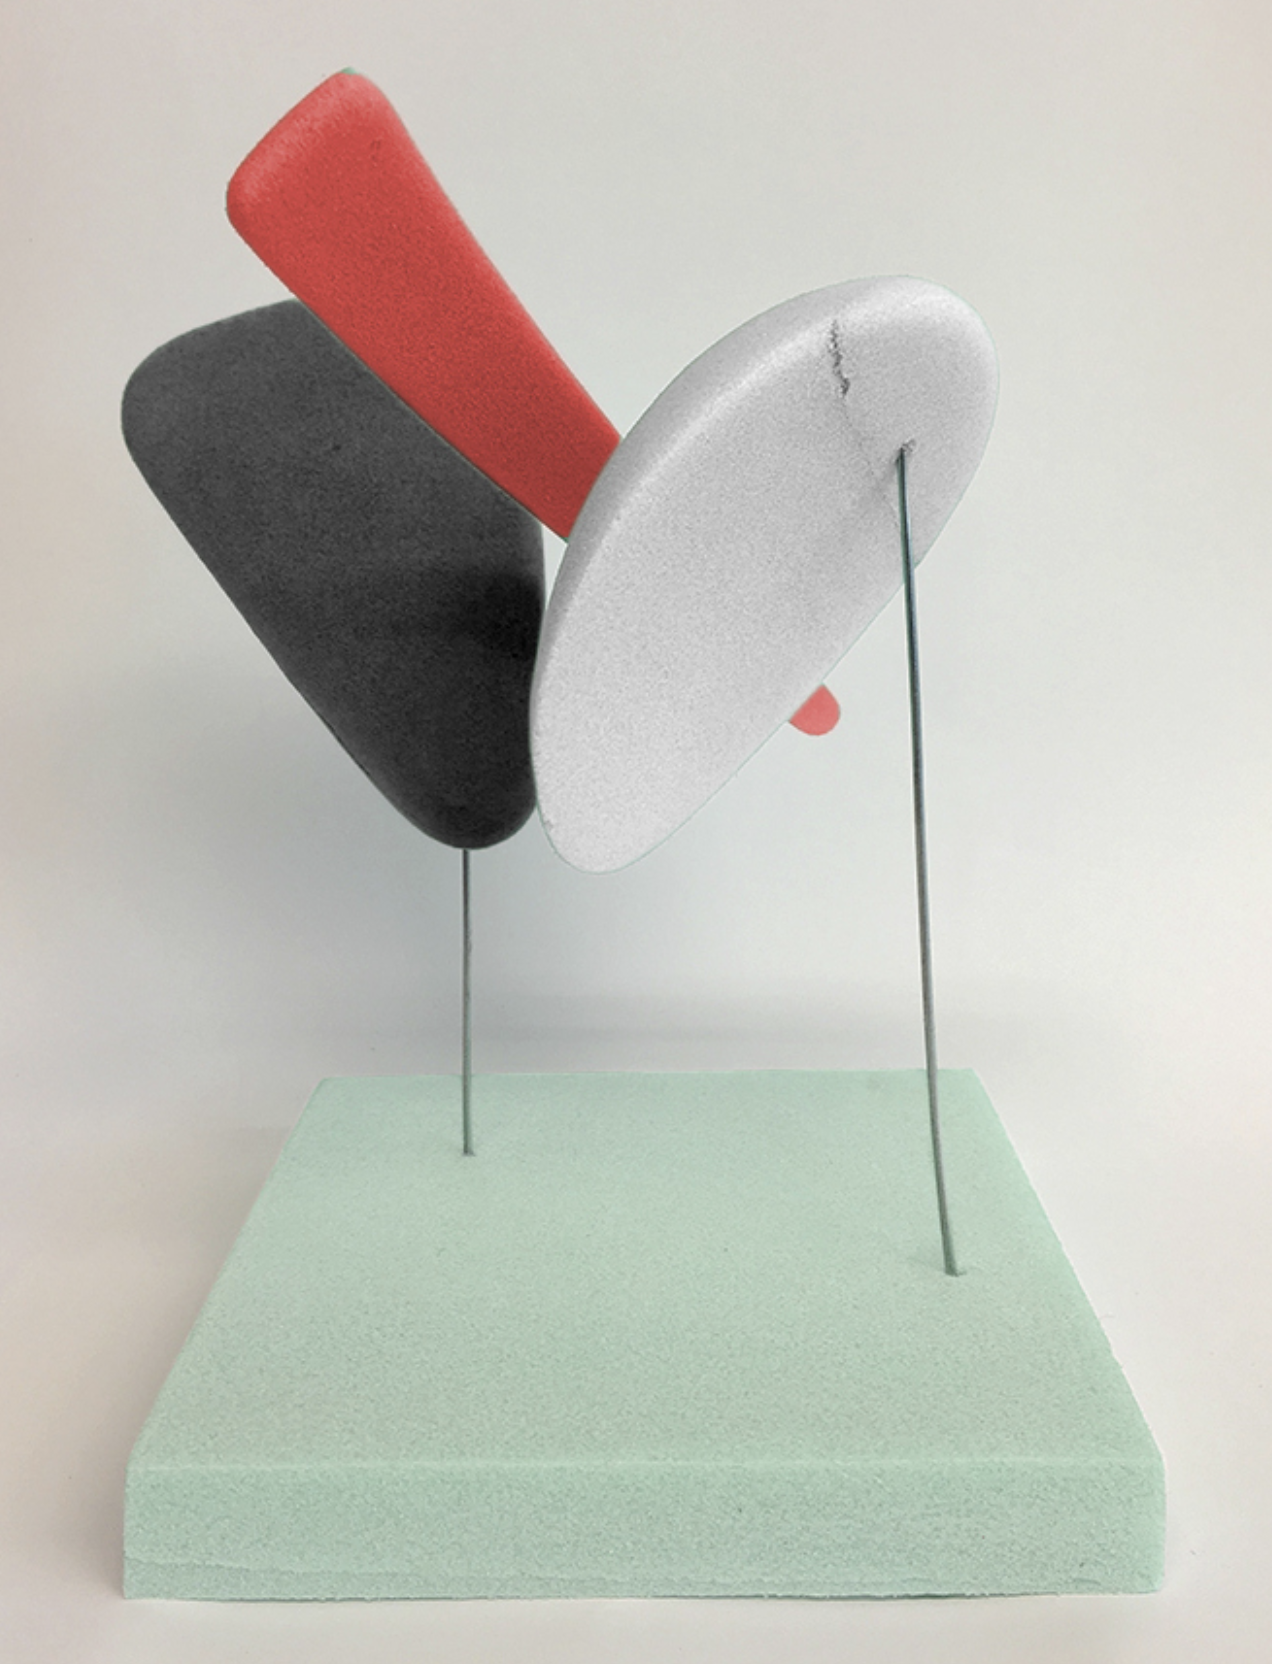 3D representation of the MOD culture and visual identity